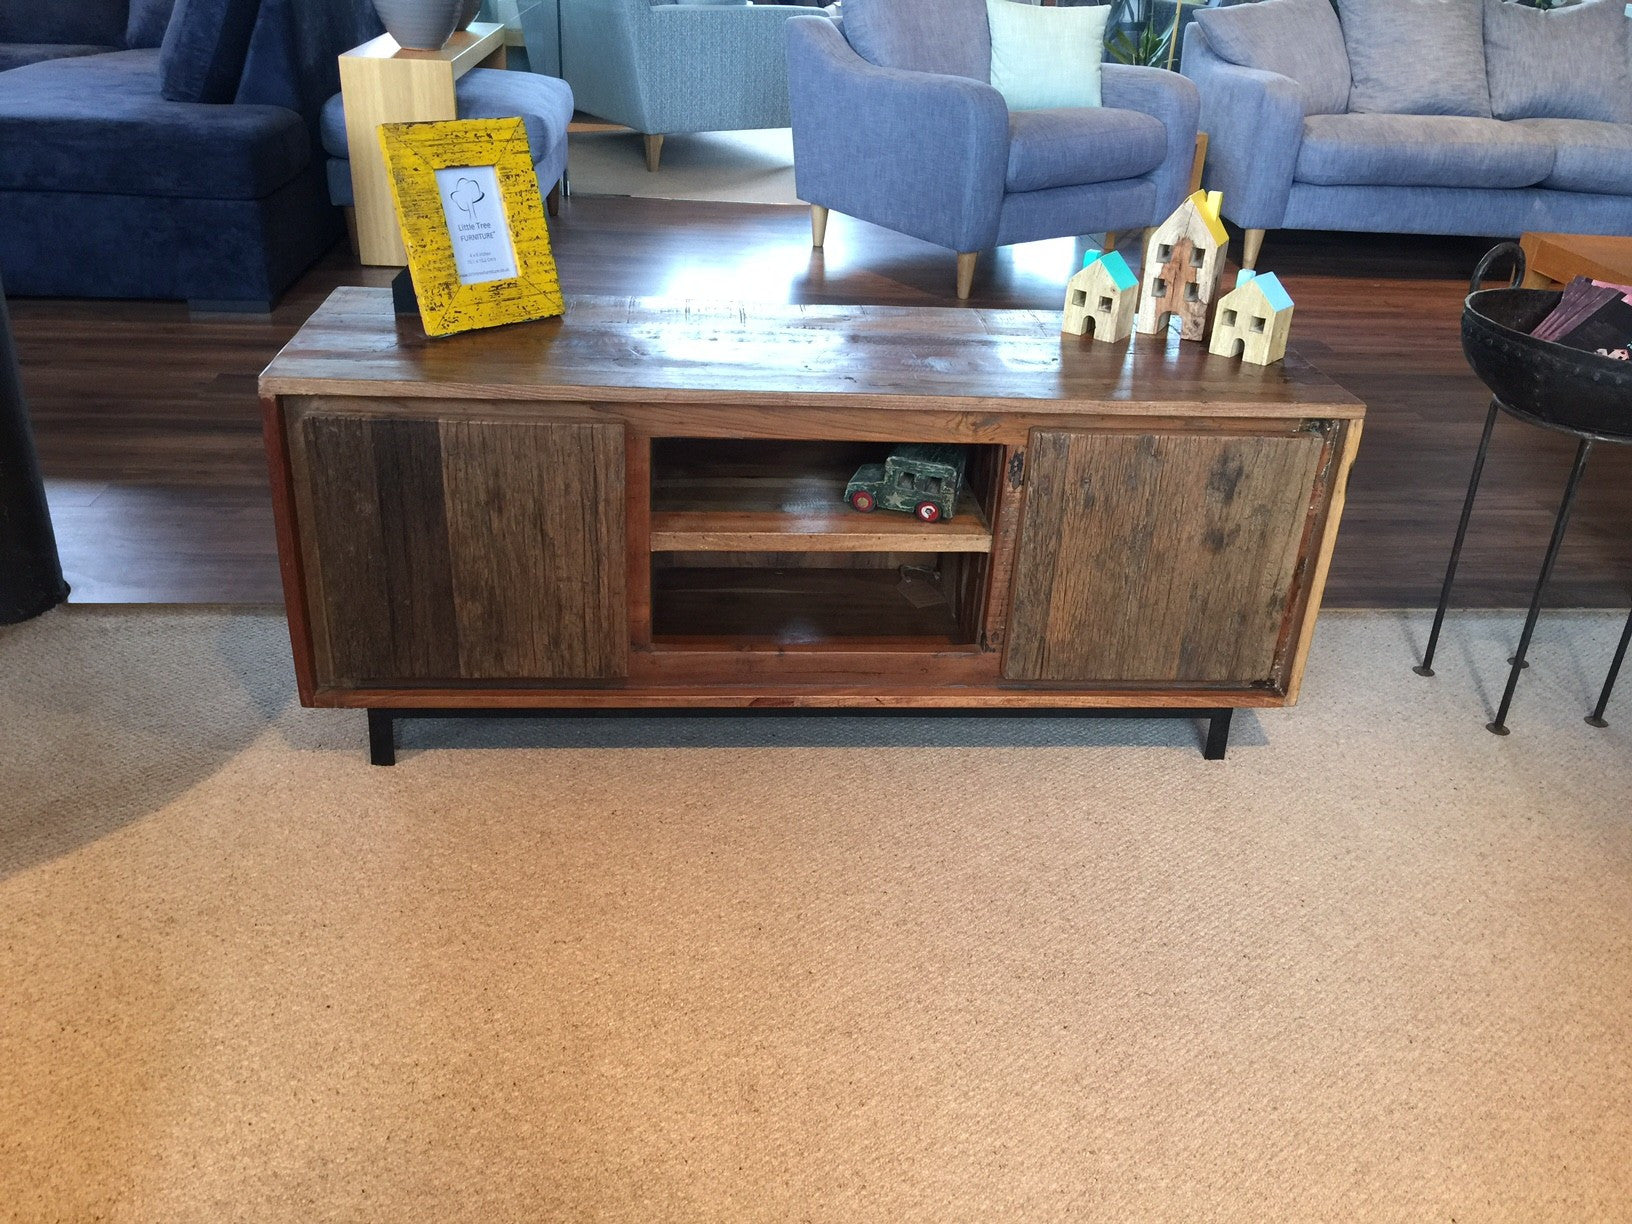 Ashburnham Sleeper Coffee Table WOODSTOCK Interiors